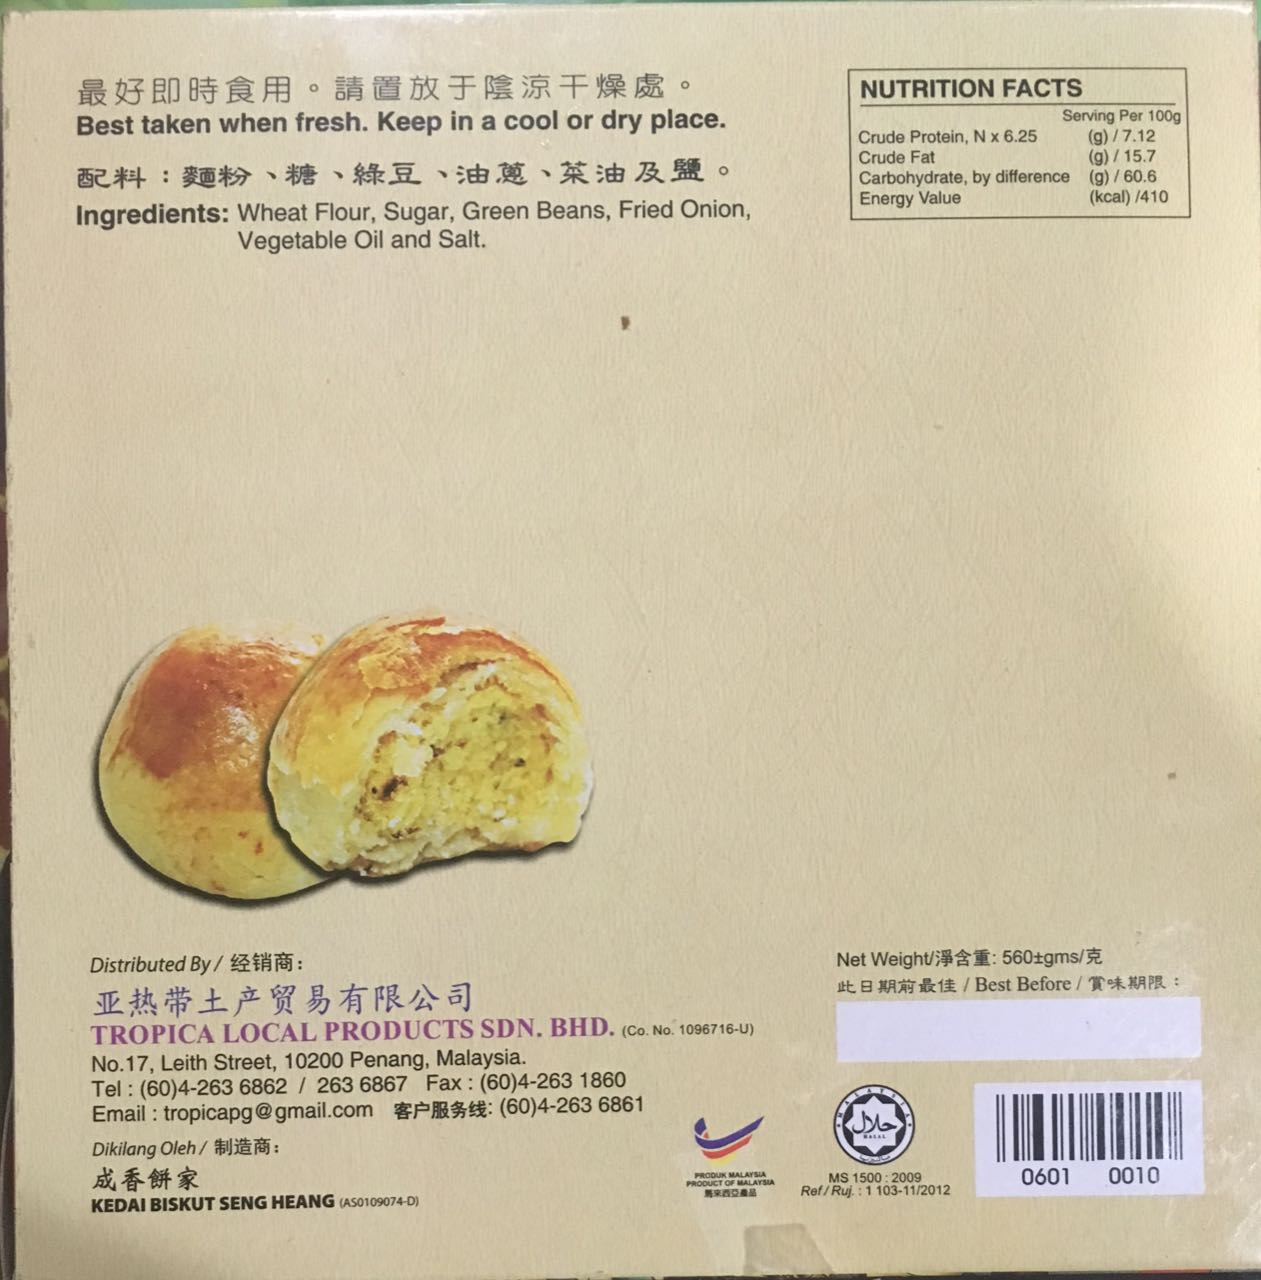 Tambun Biscuits - Penang Island Specialty (Nutrition Facts)